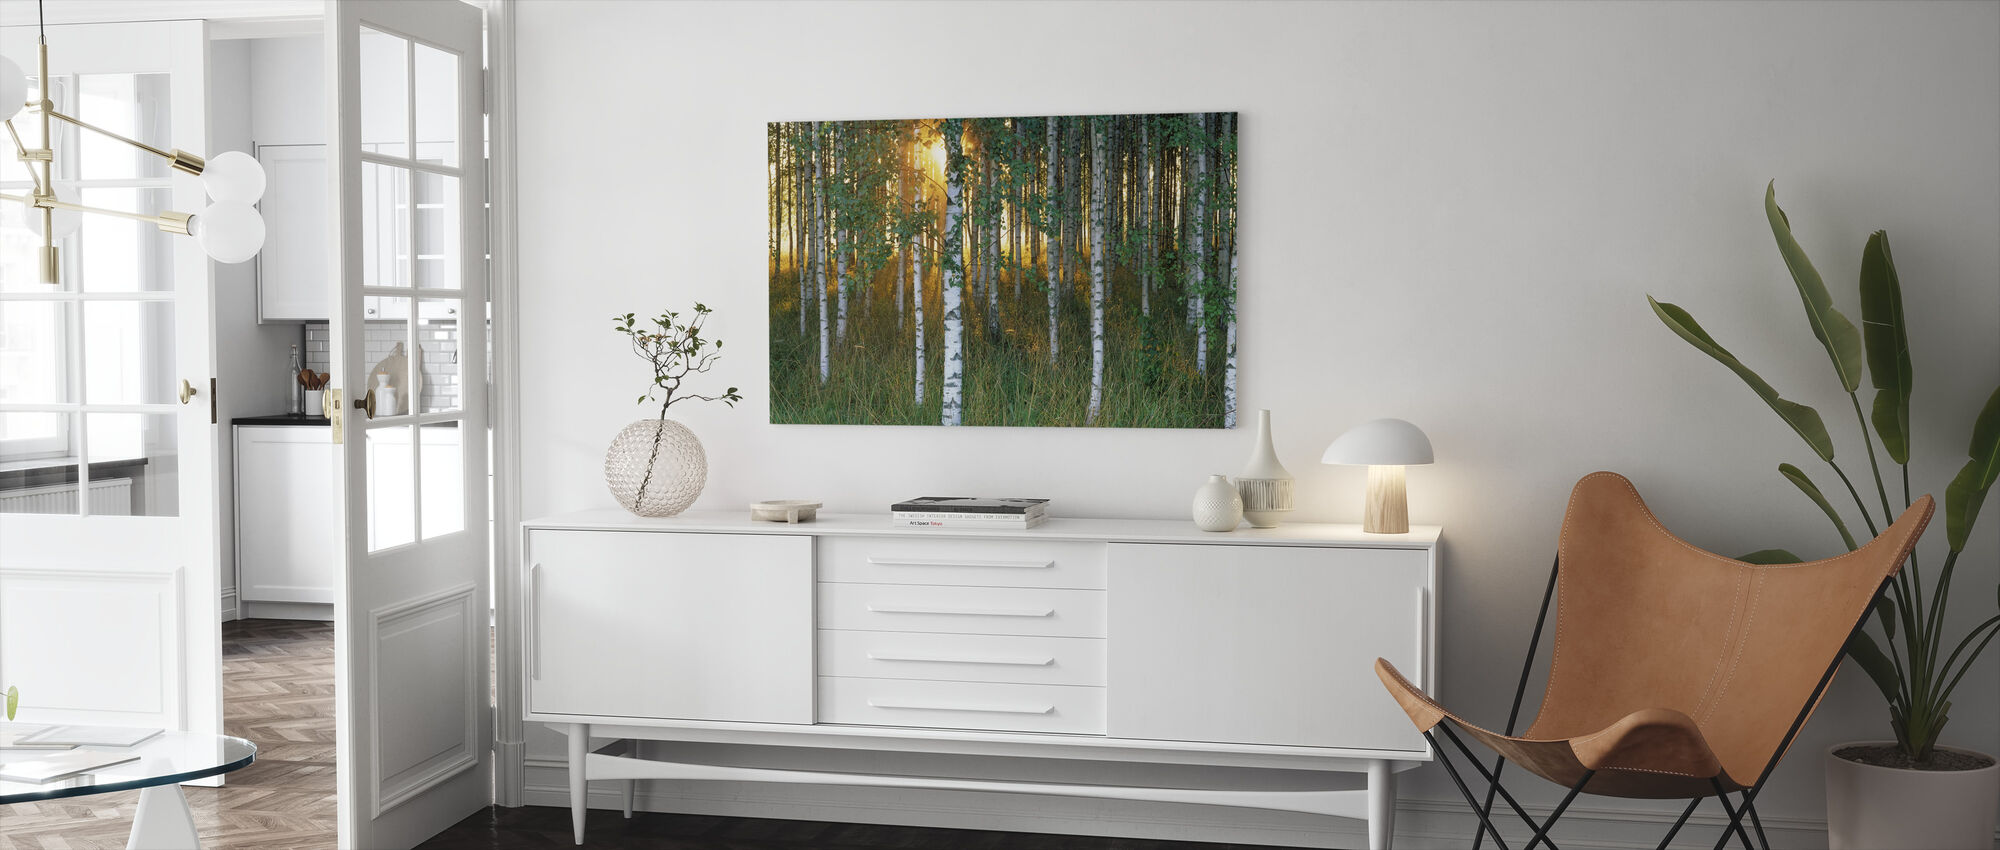 Sunbeam through Birch Forest - Canvas print - Living Room